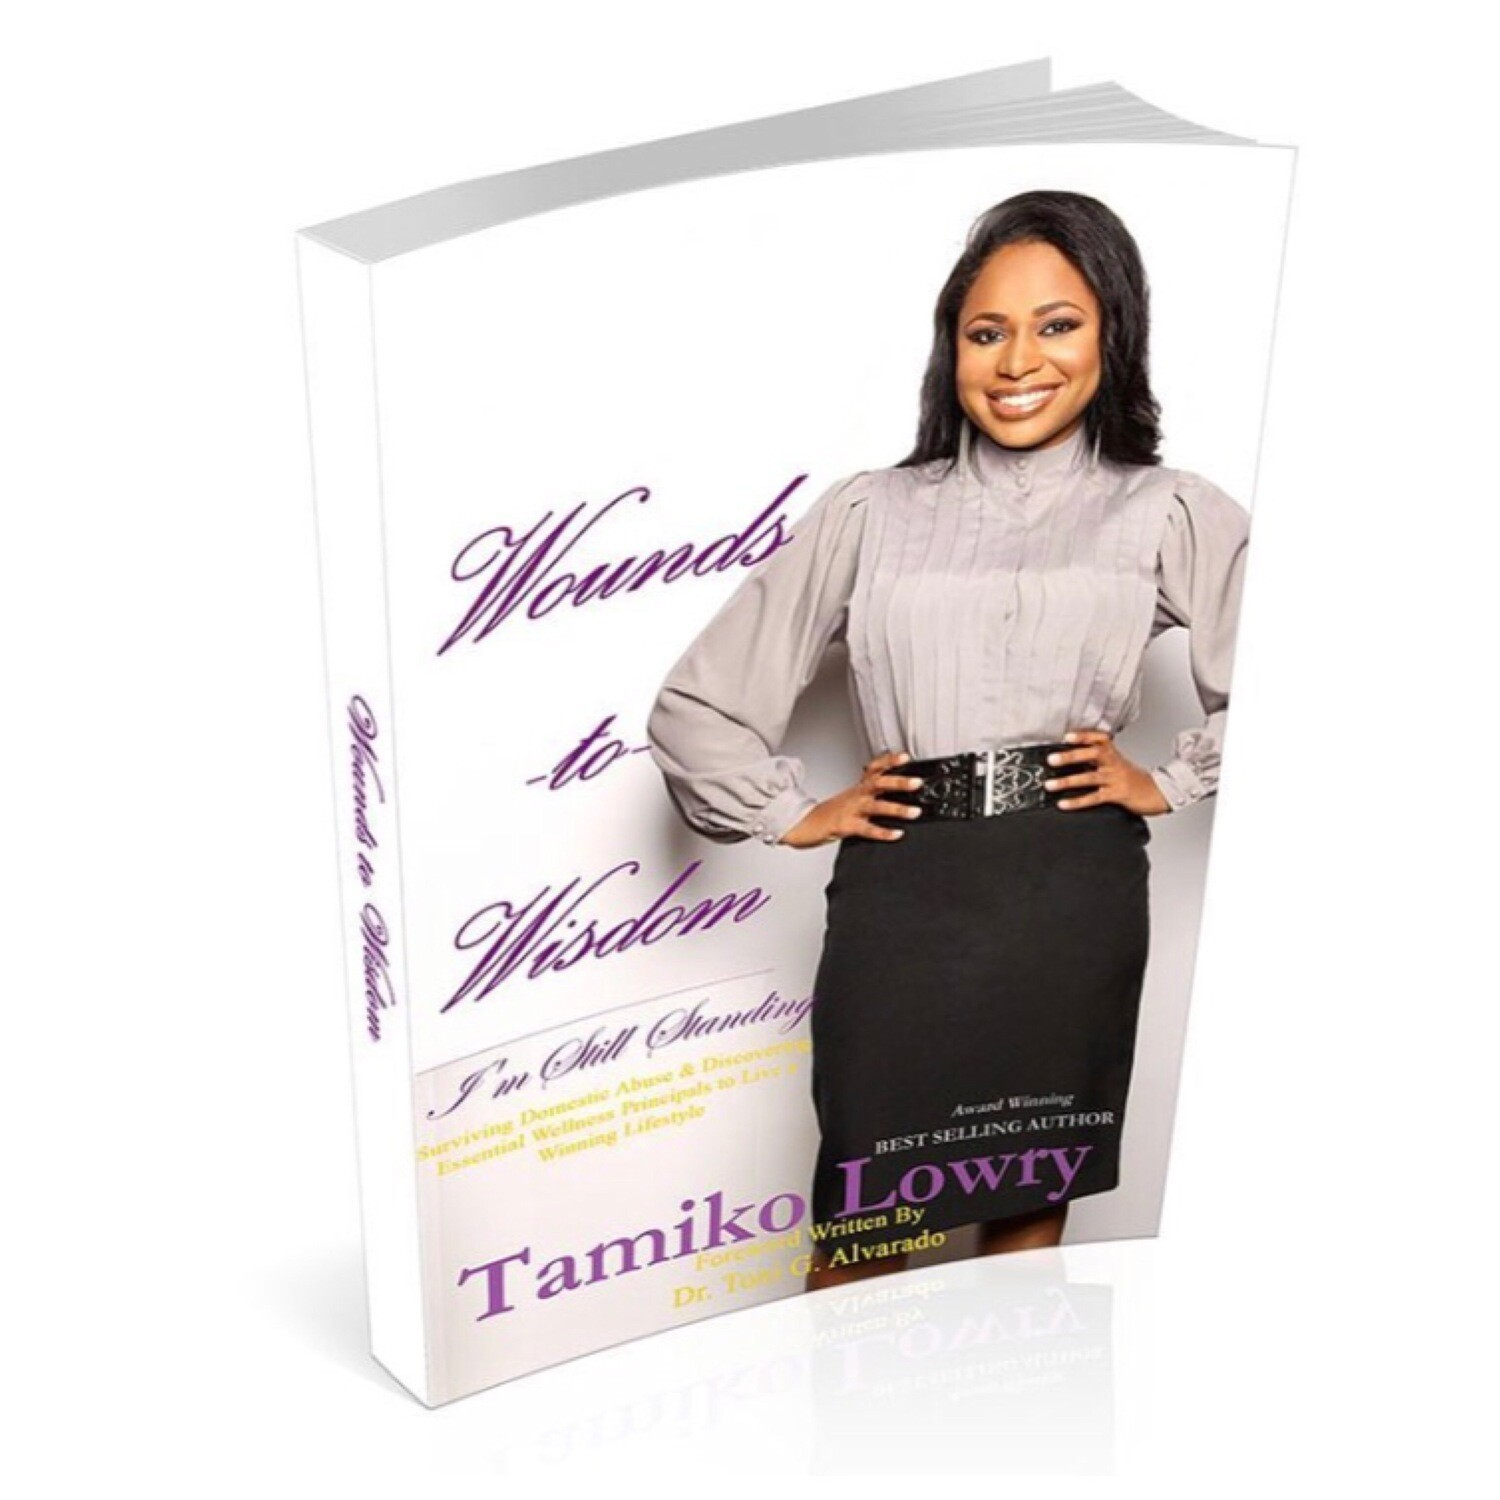 Wounds to Wisdom... I'm Still Standing (paperback)